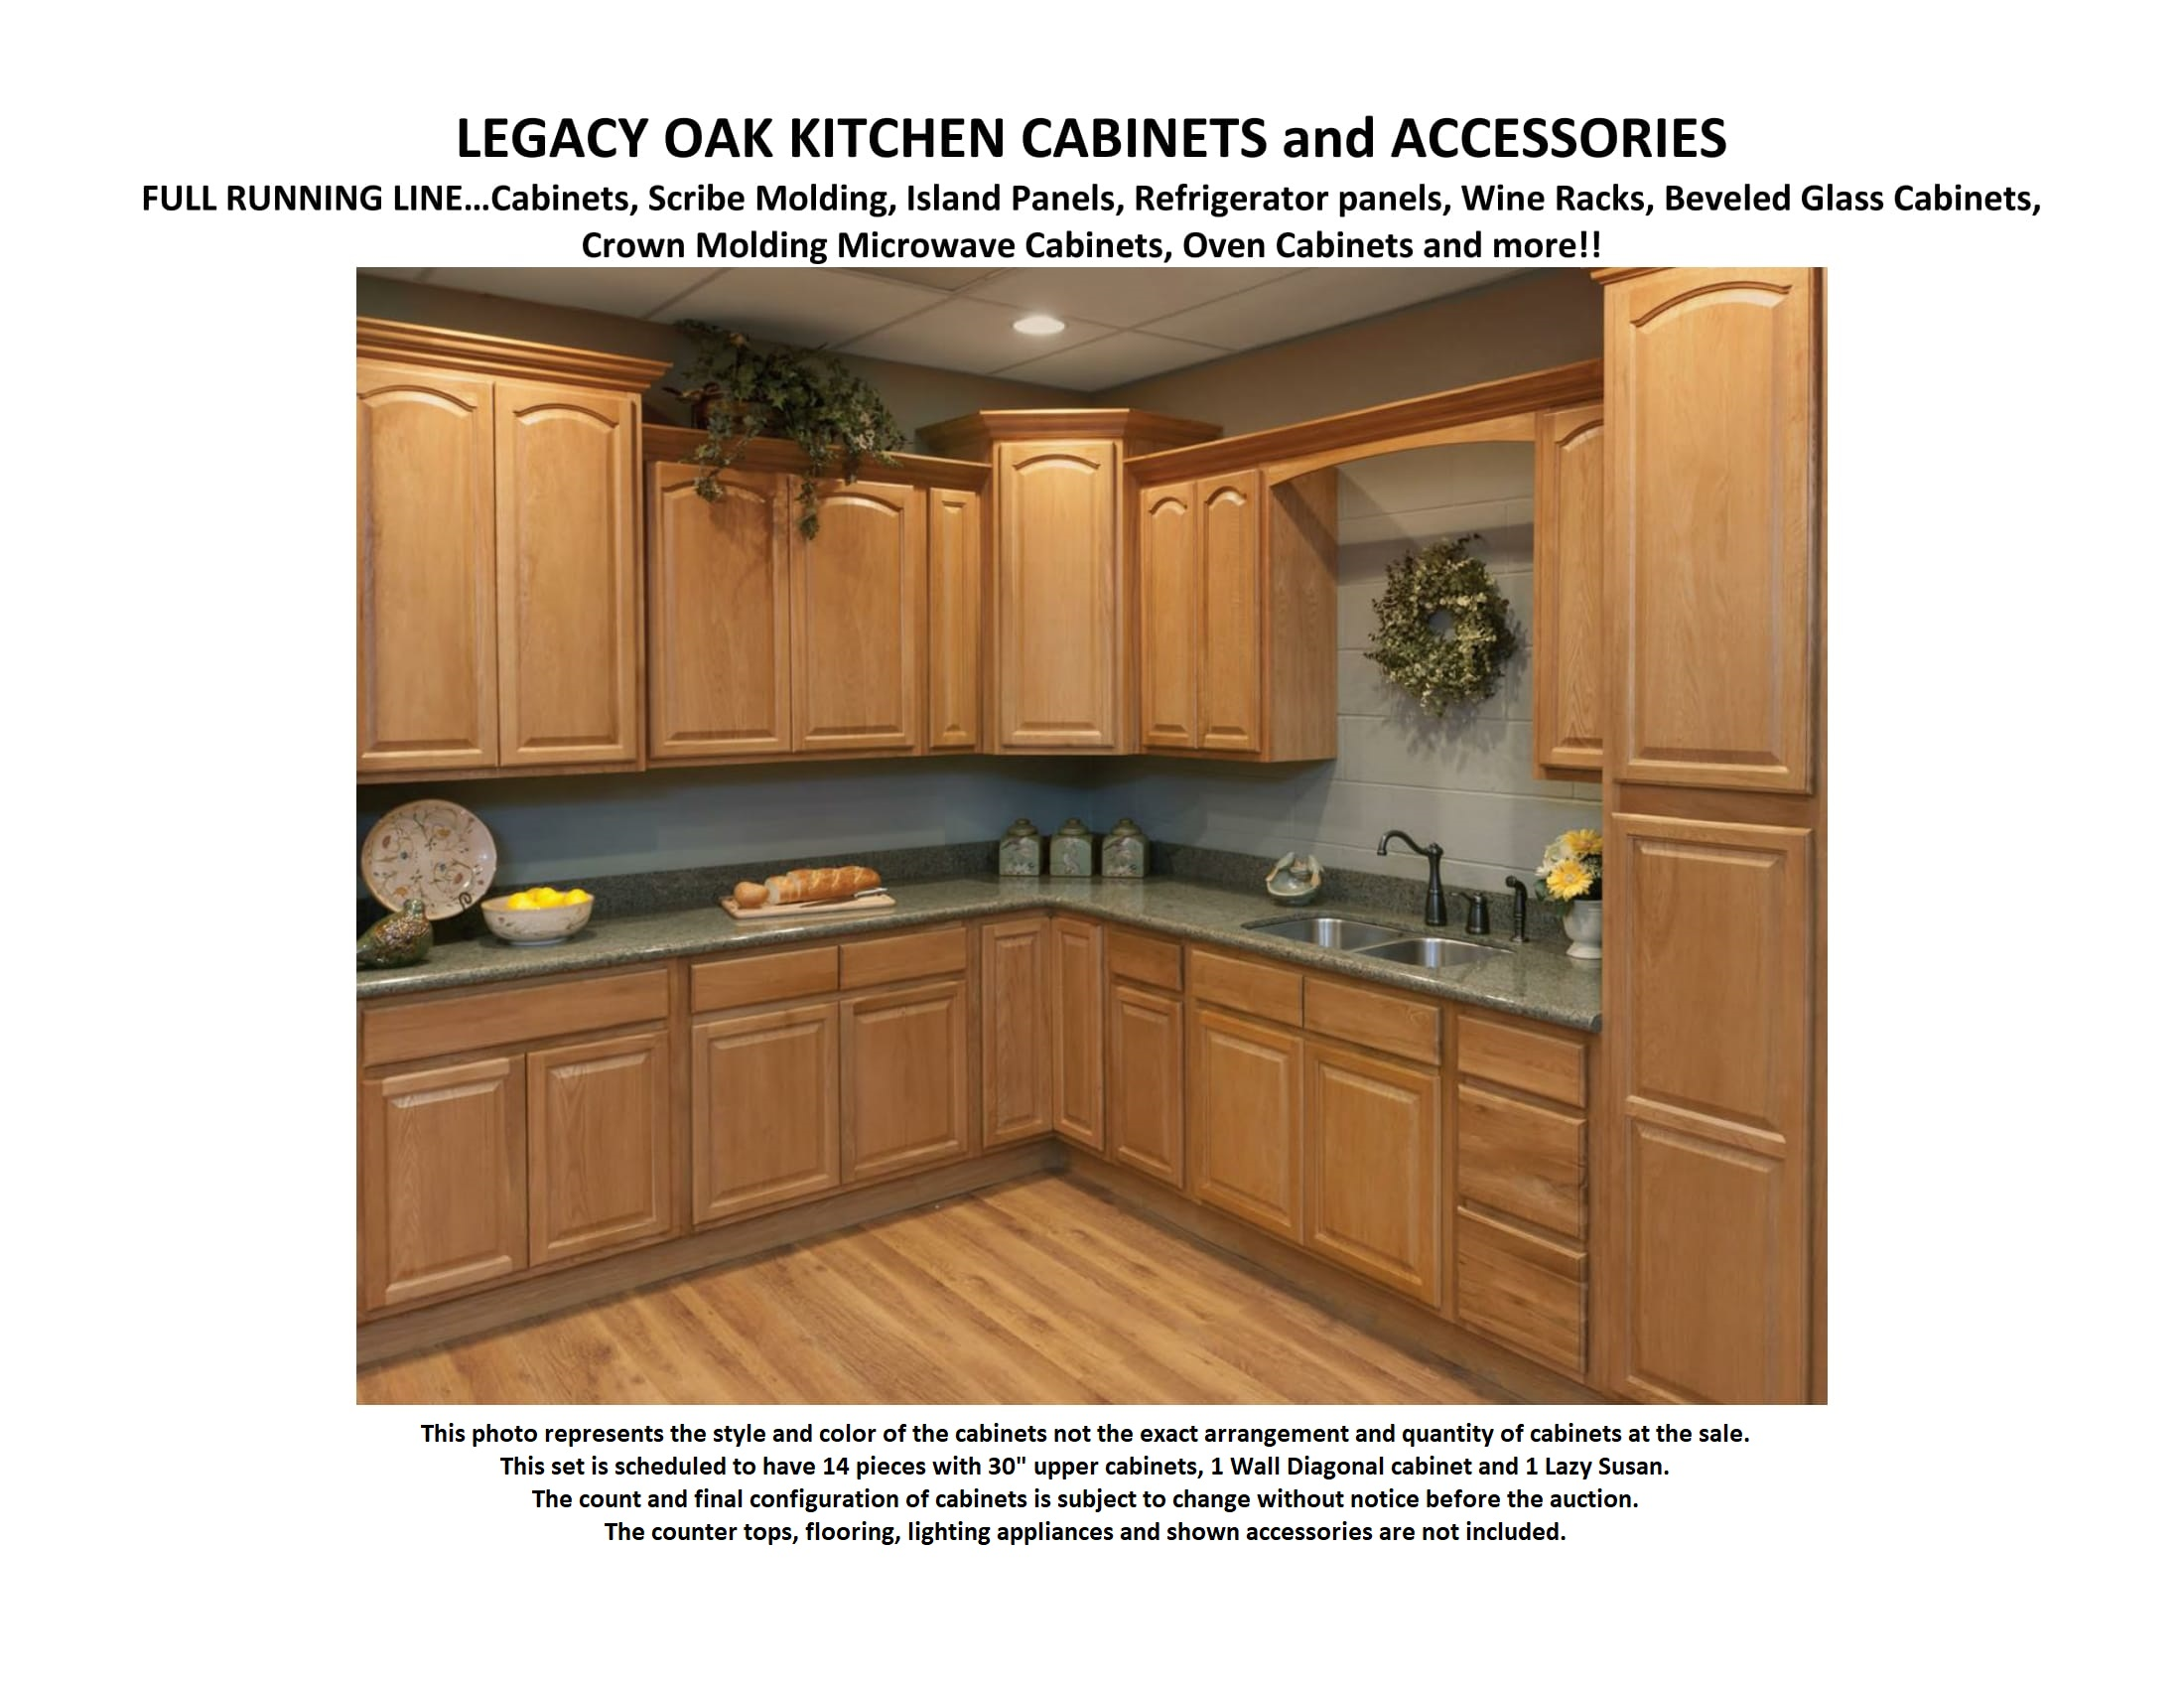 Legacy oak kitchen cabinets legacy plymouth maple for Aristokraft oak kitchen cabinets